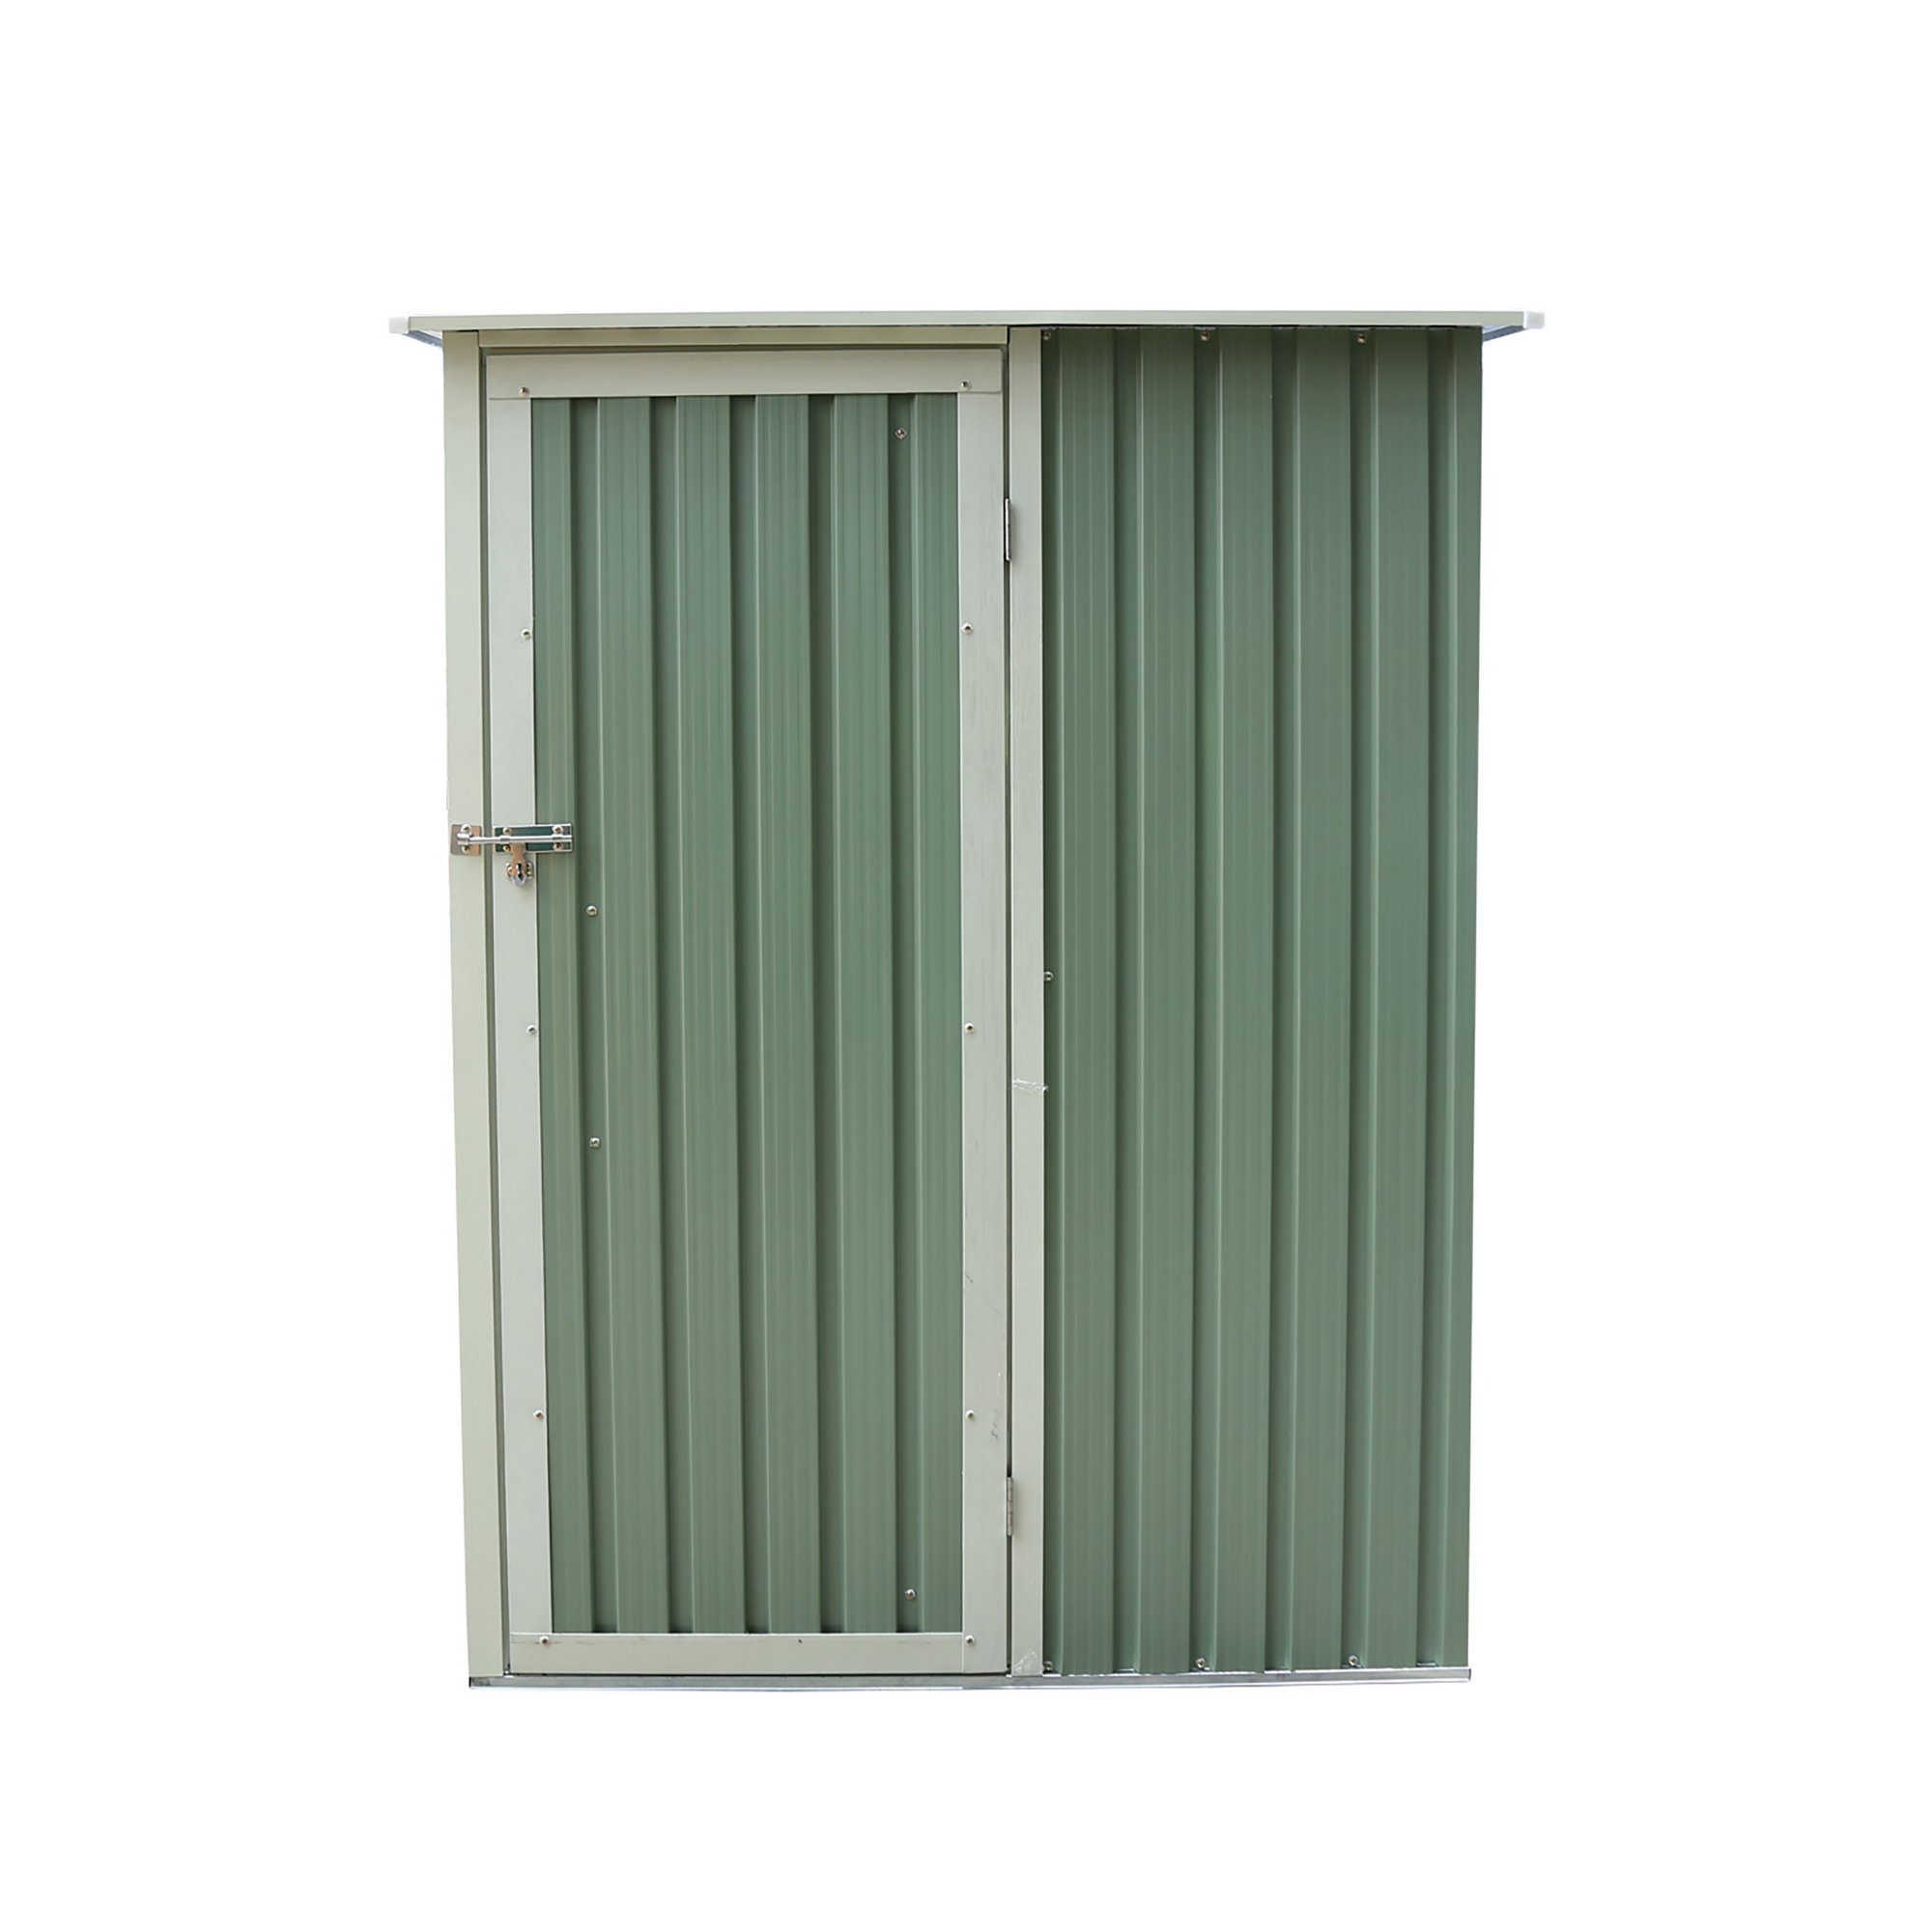 Image of 4.7 x 3Ft Metal Shed